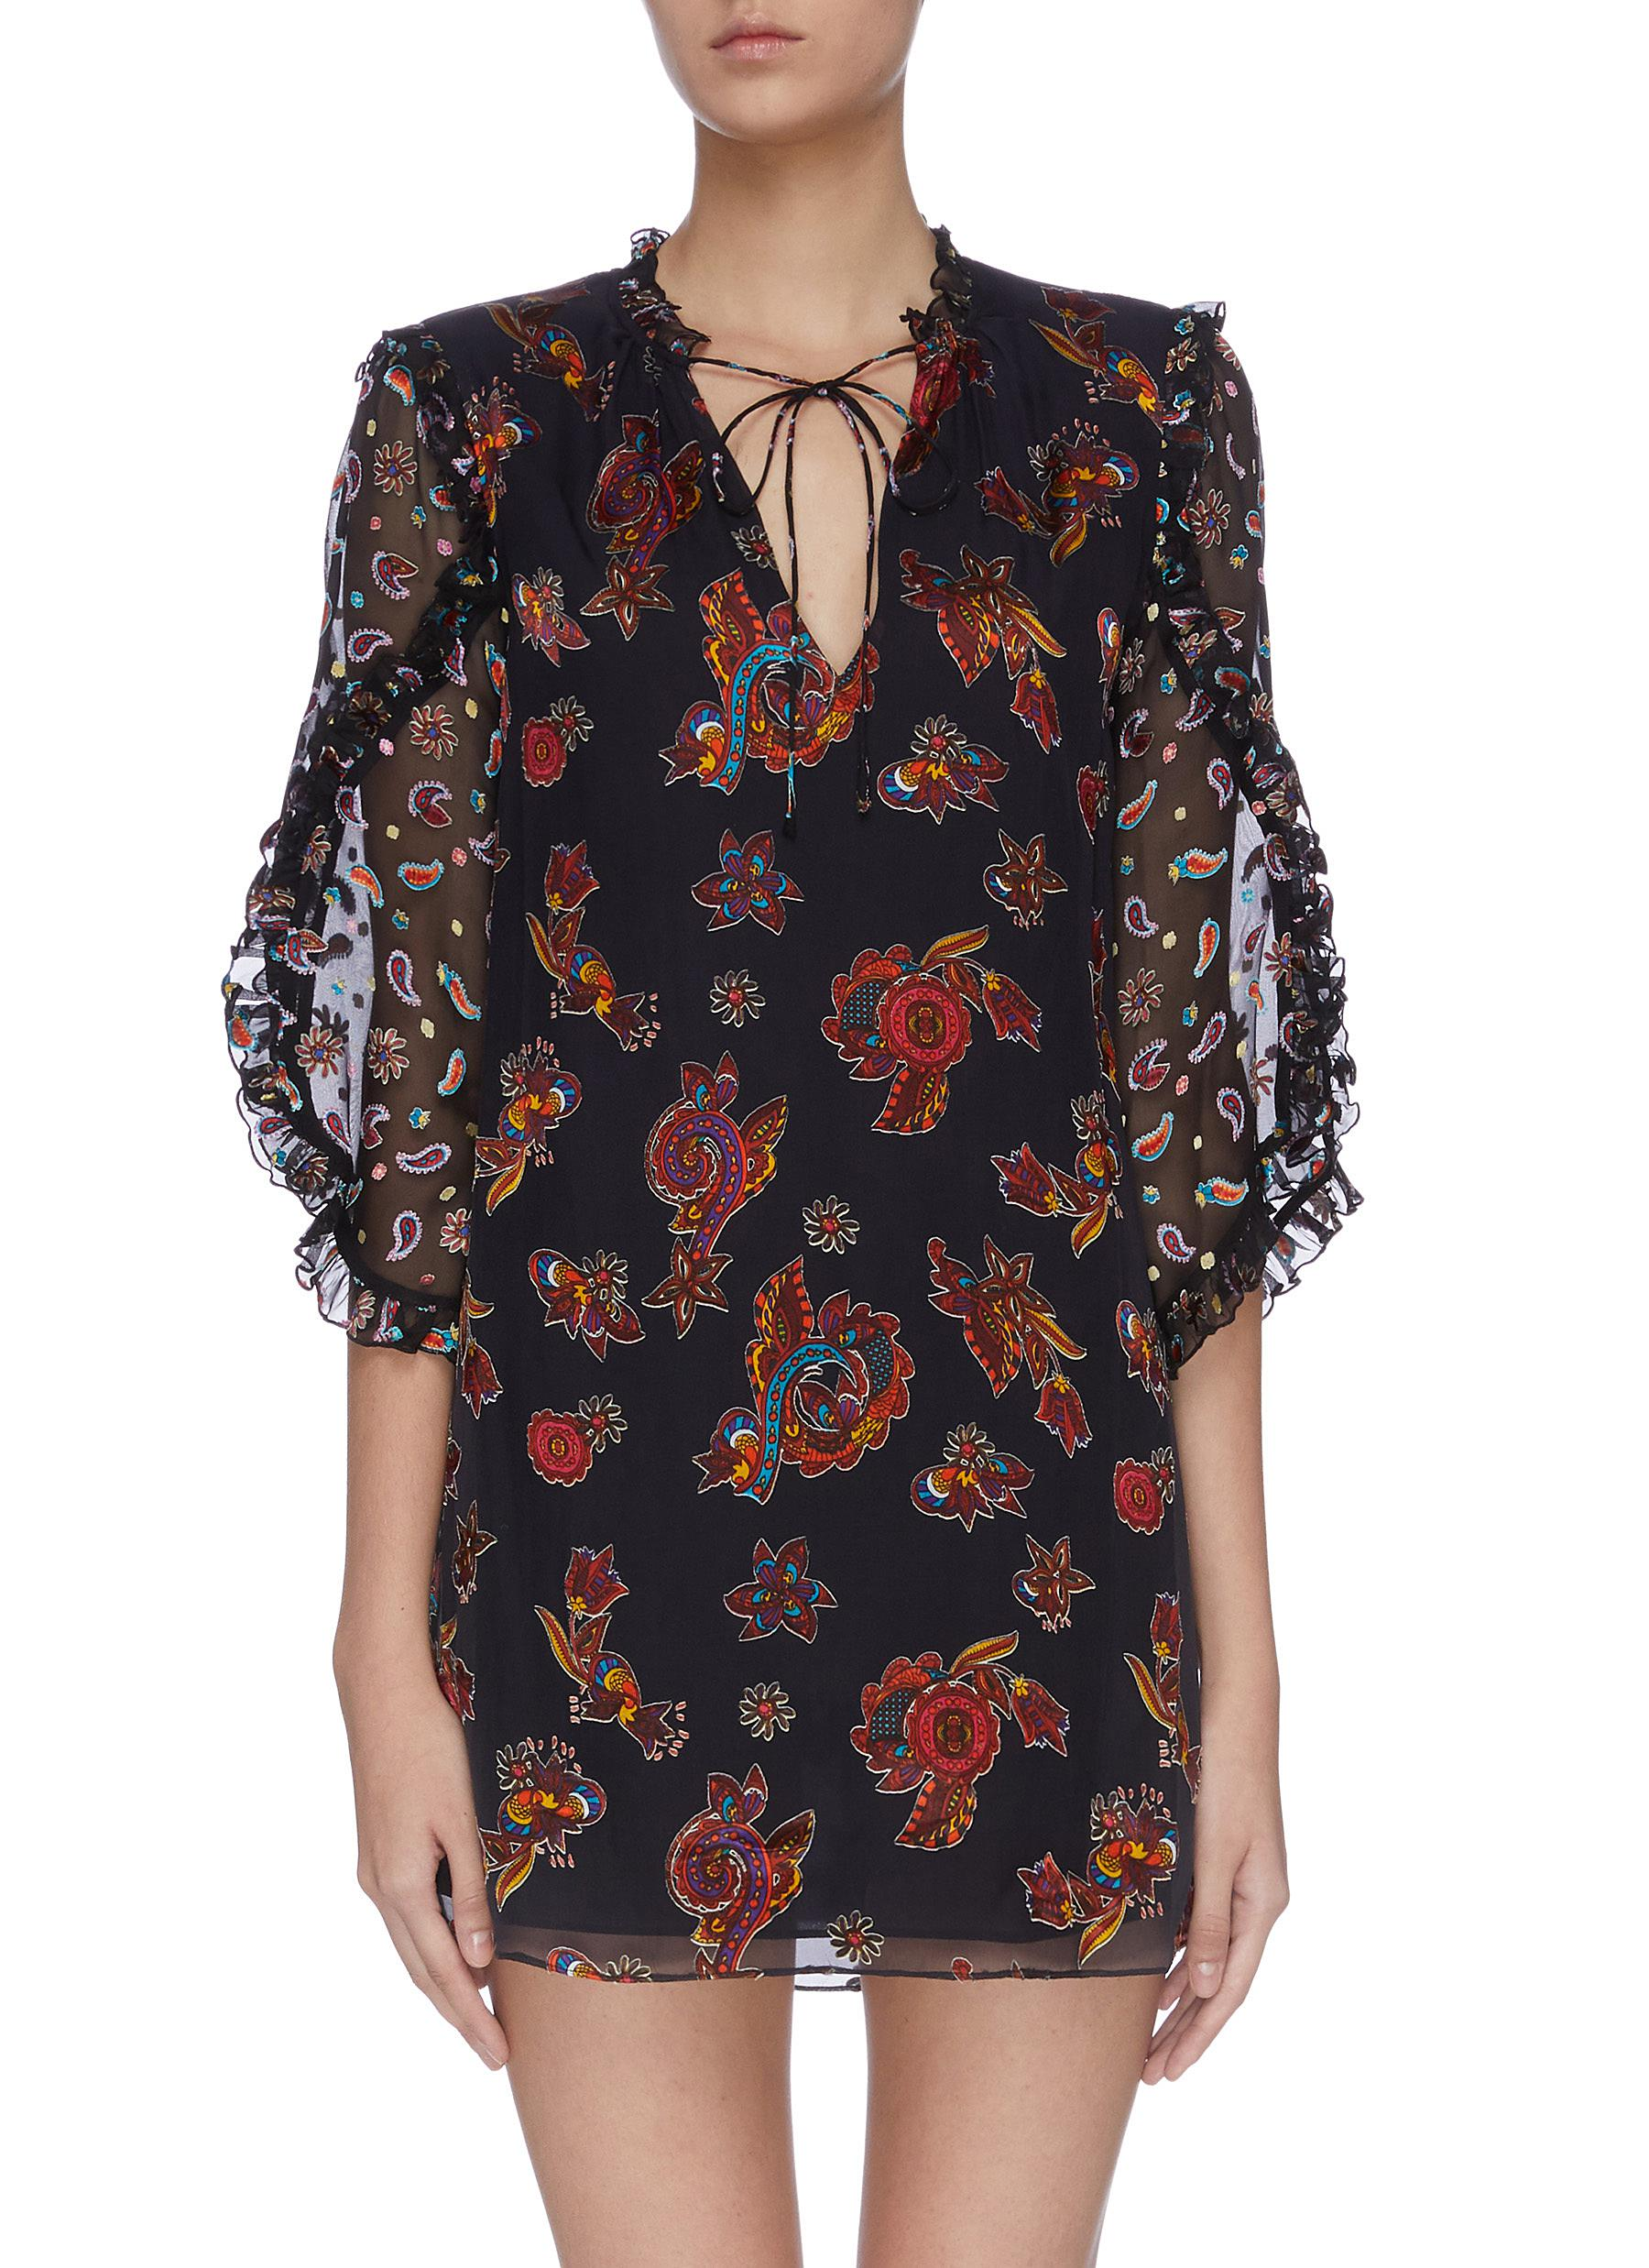 Julius ruffle sleeve neck tie mixed print dress by Alice + Olivia